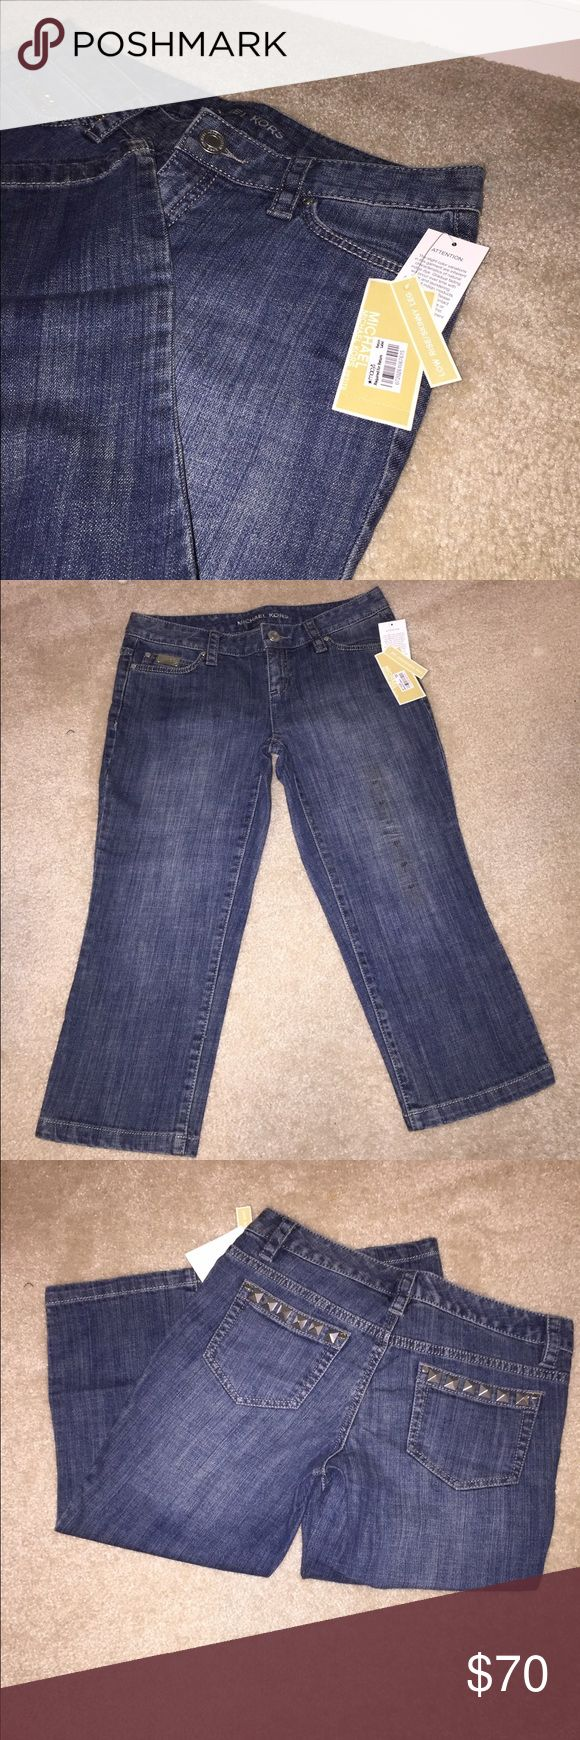 👖💋New Michael Kors - women's👖 👖Brand new with tags Michael Kors women's cropped jeans 👖Approx 29inch long👖Size 4P 👖99% cotton/1%spandex. Thanks for looking. Open to offers. 🙂 Michael Kors Jeans Ankle & Cropped